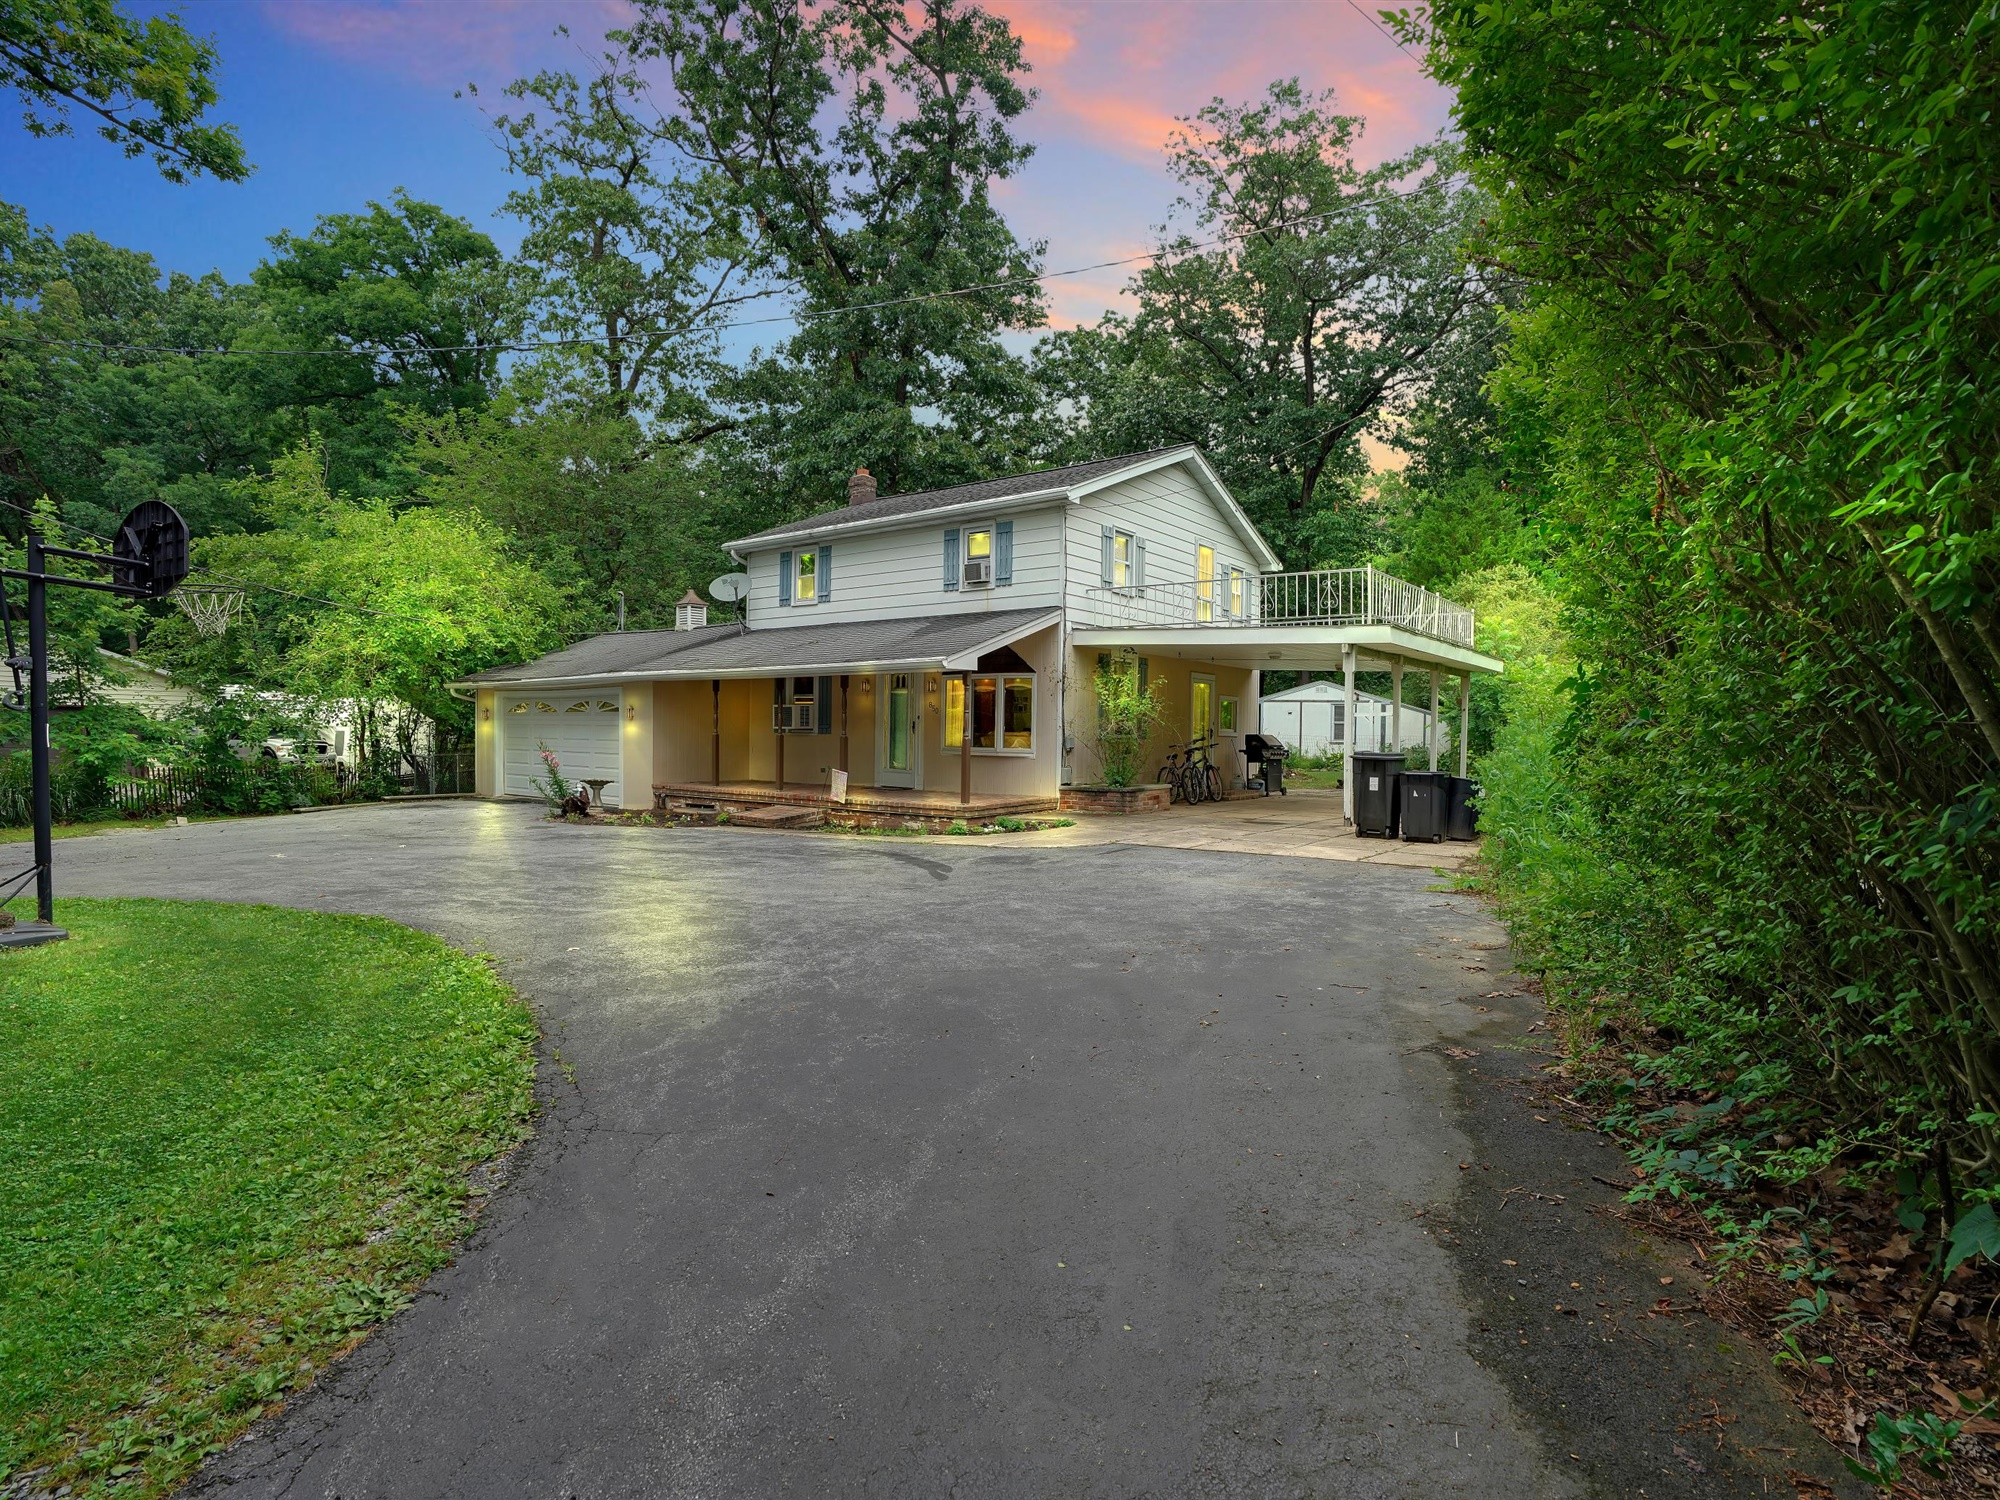 Welcome to 850 Prescott Drive, Lebanon PA - providing a wooded setting with convenience